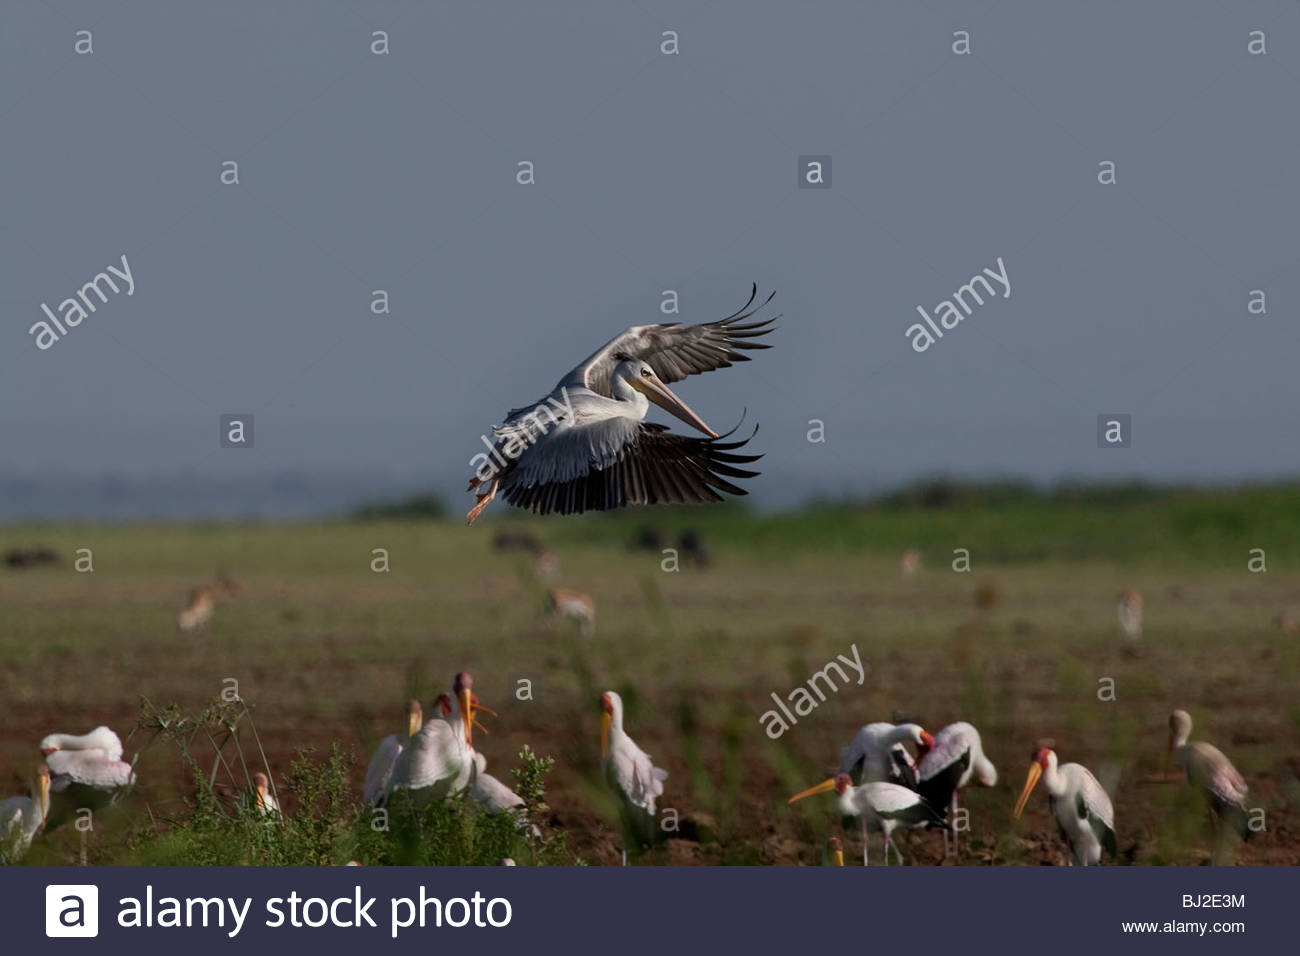 An Great White Pelican is landig at Lake Manyara National Park, Tanzania. The other birds are Yellow-billed Storks. - Stock Image